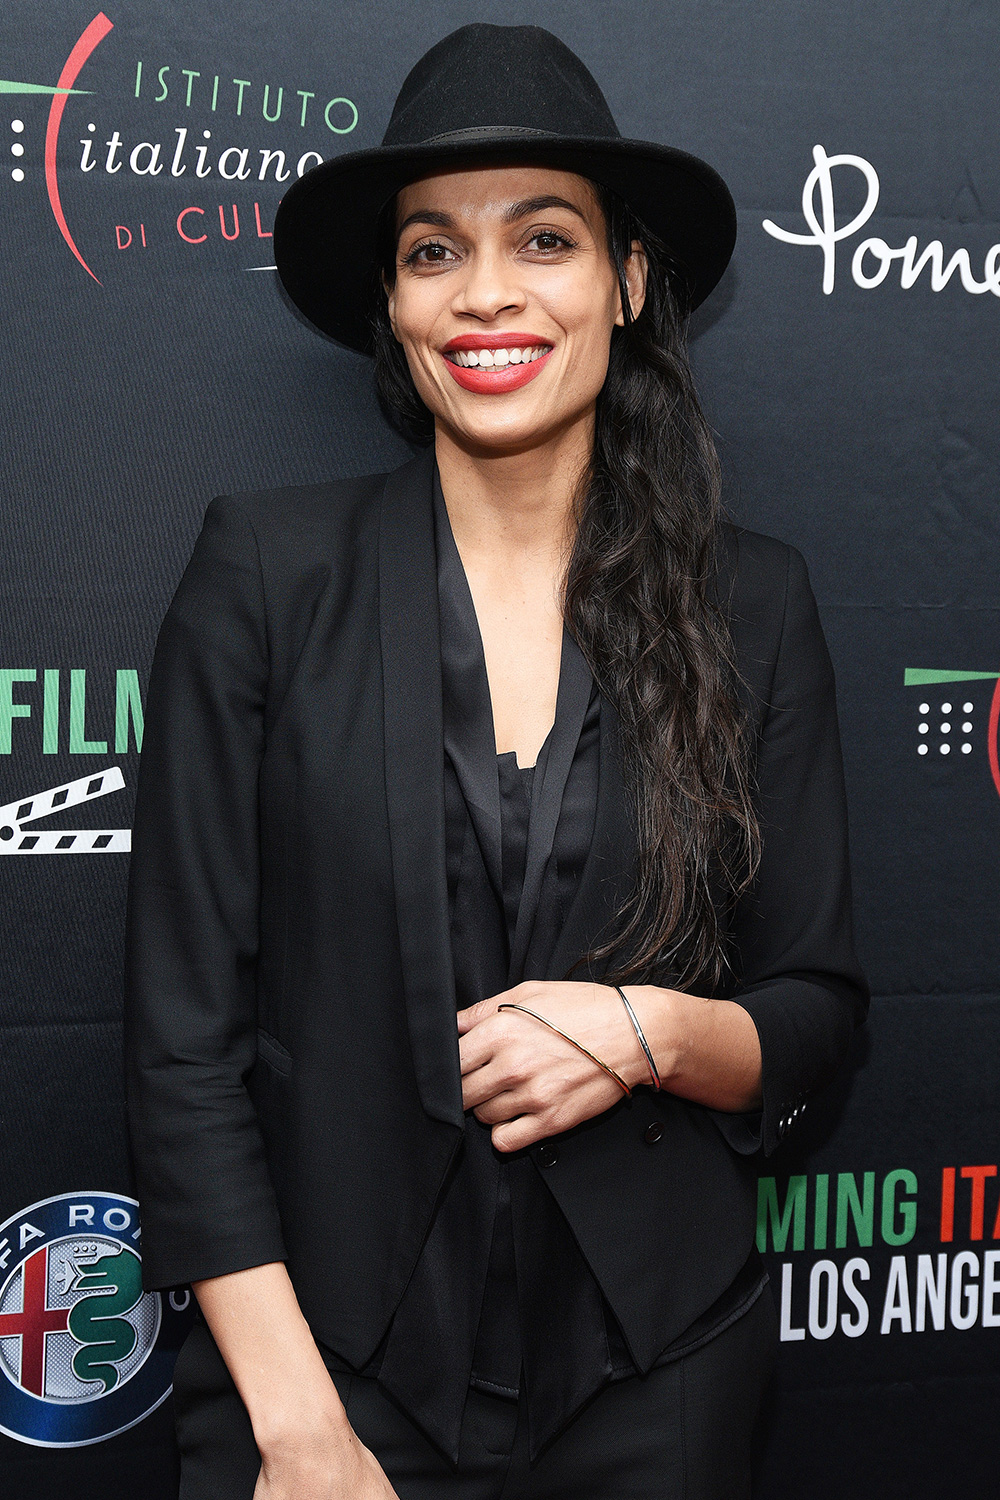 Rosario Dawson attends 2020 Filming Italy at Harmony Gold Theatre on January 20, 2020 in Los Angeles, California